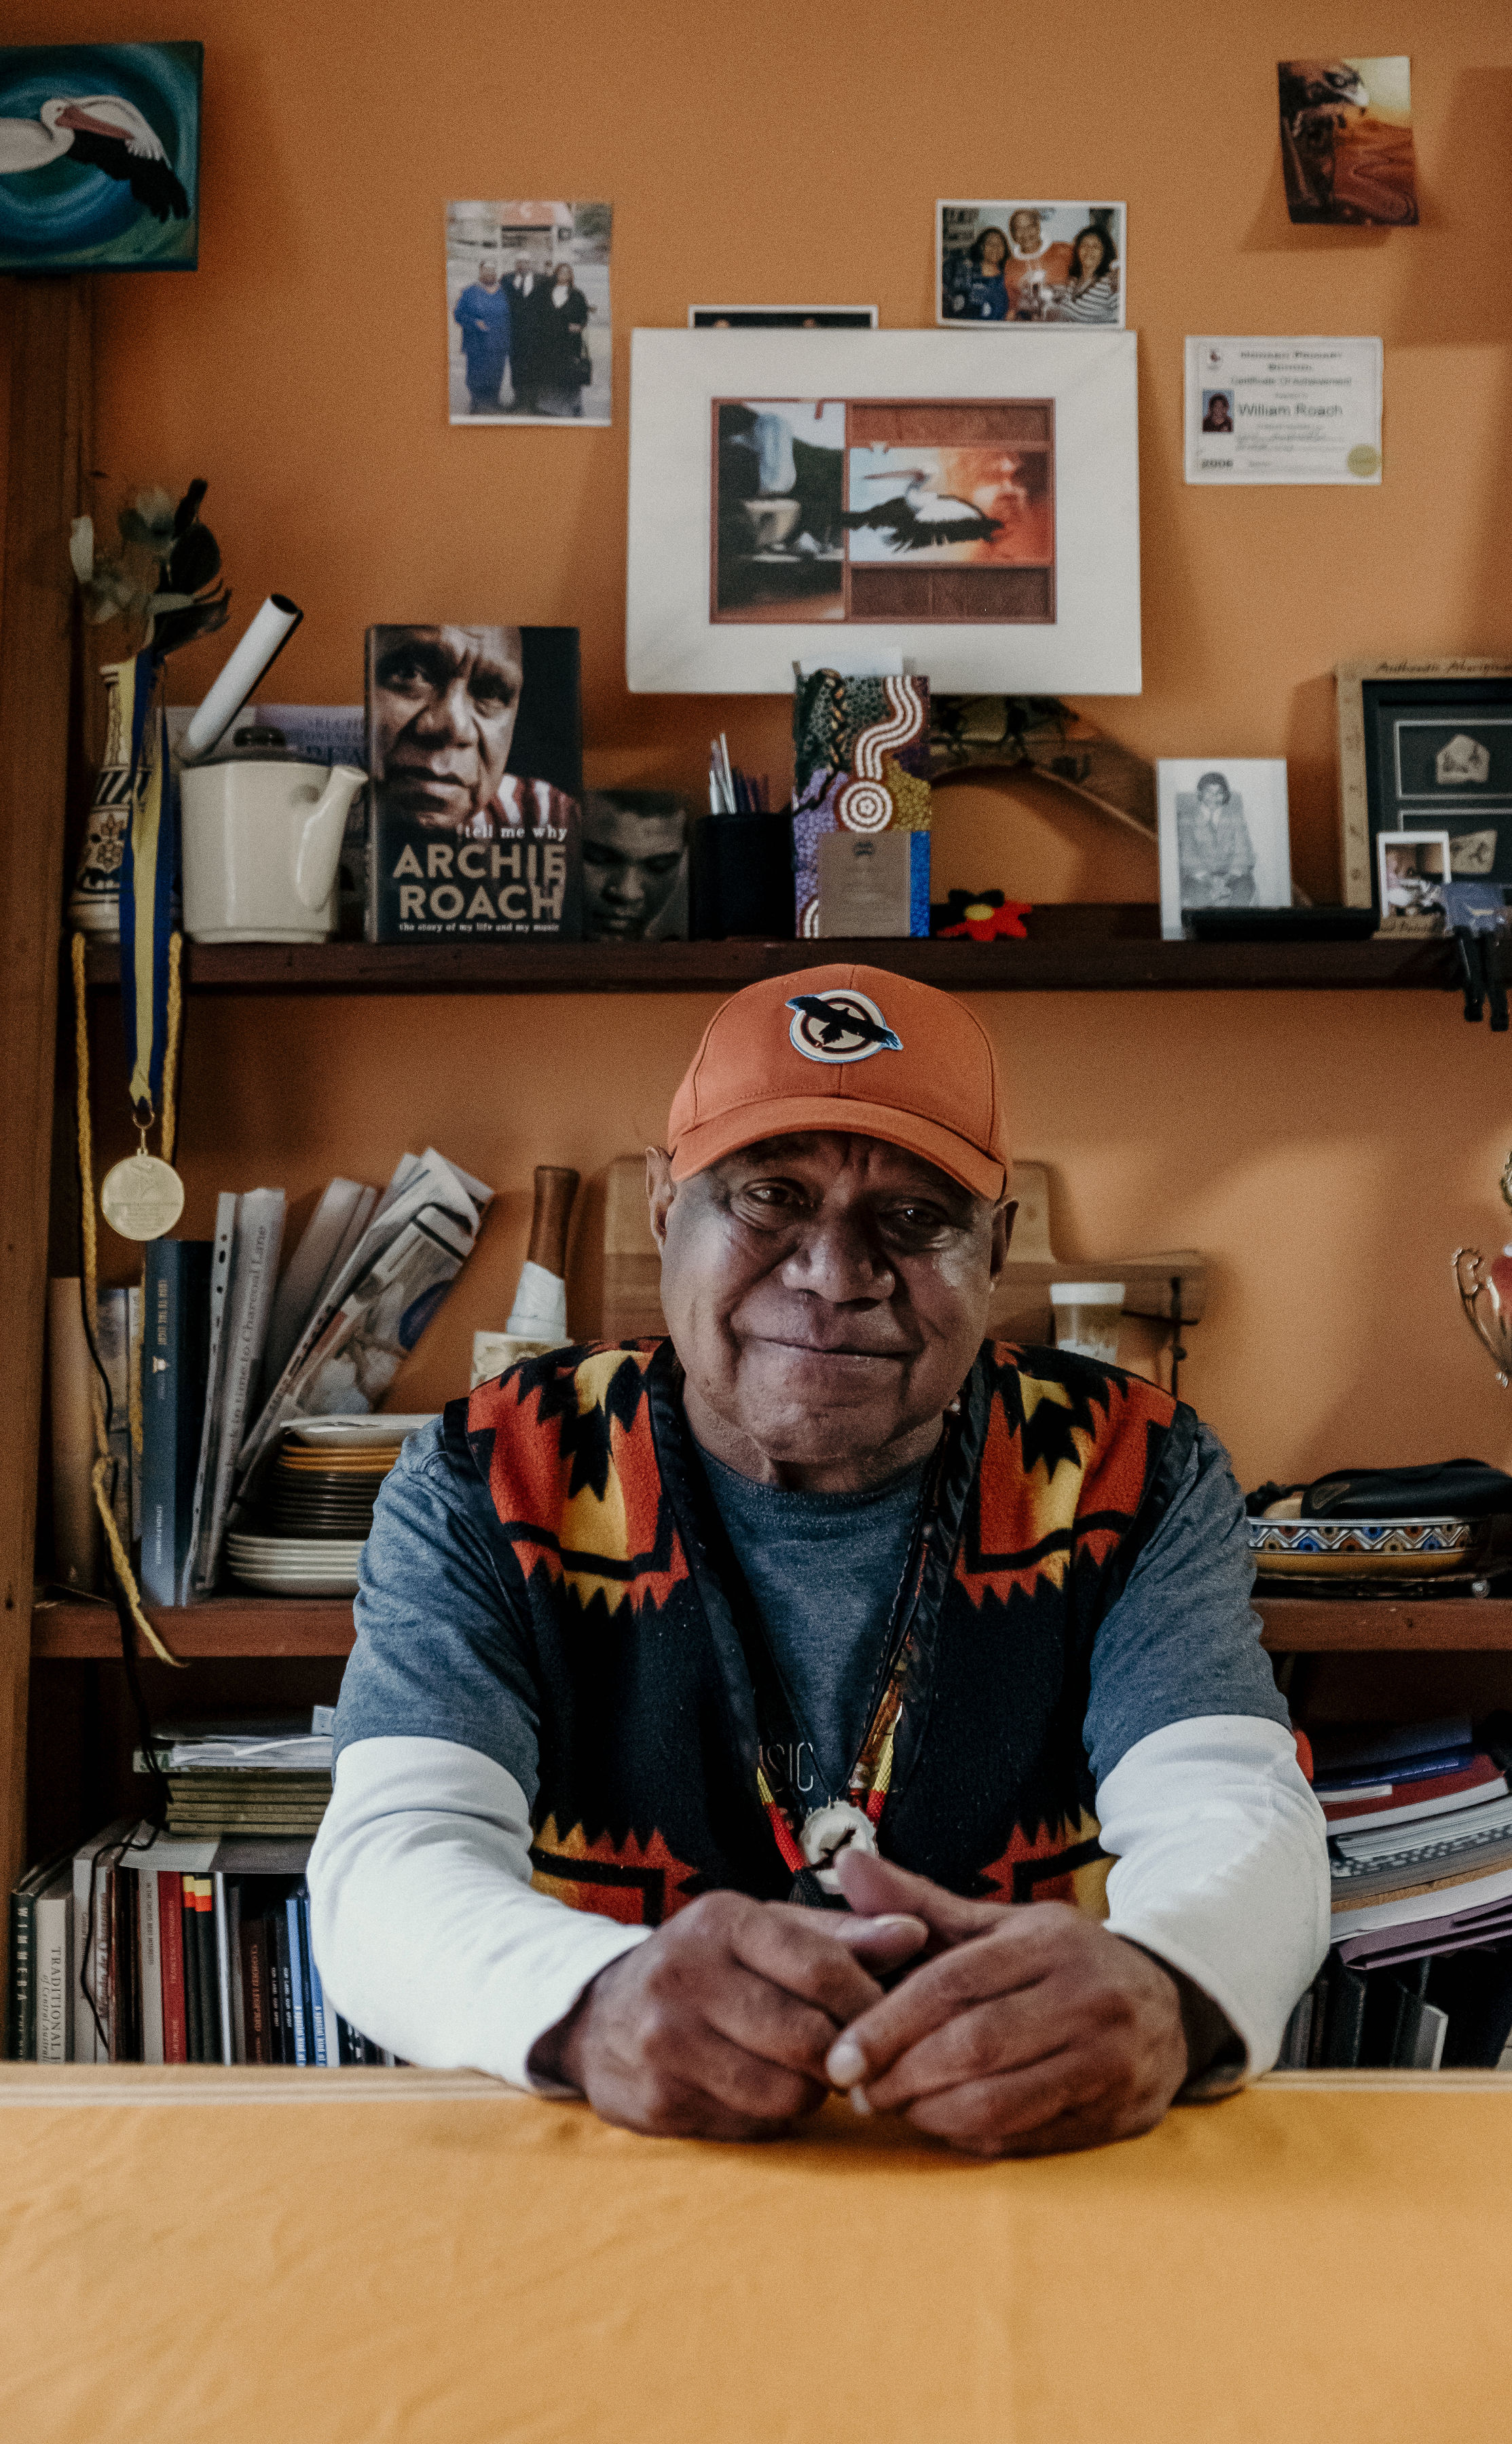 The Archie Roach Foundation Stage Is Set: A National Treasure's Knowledge Celebrated